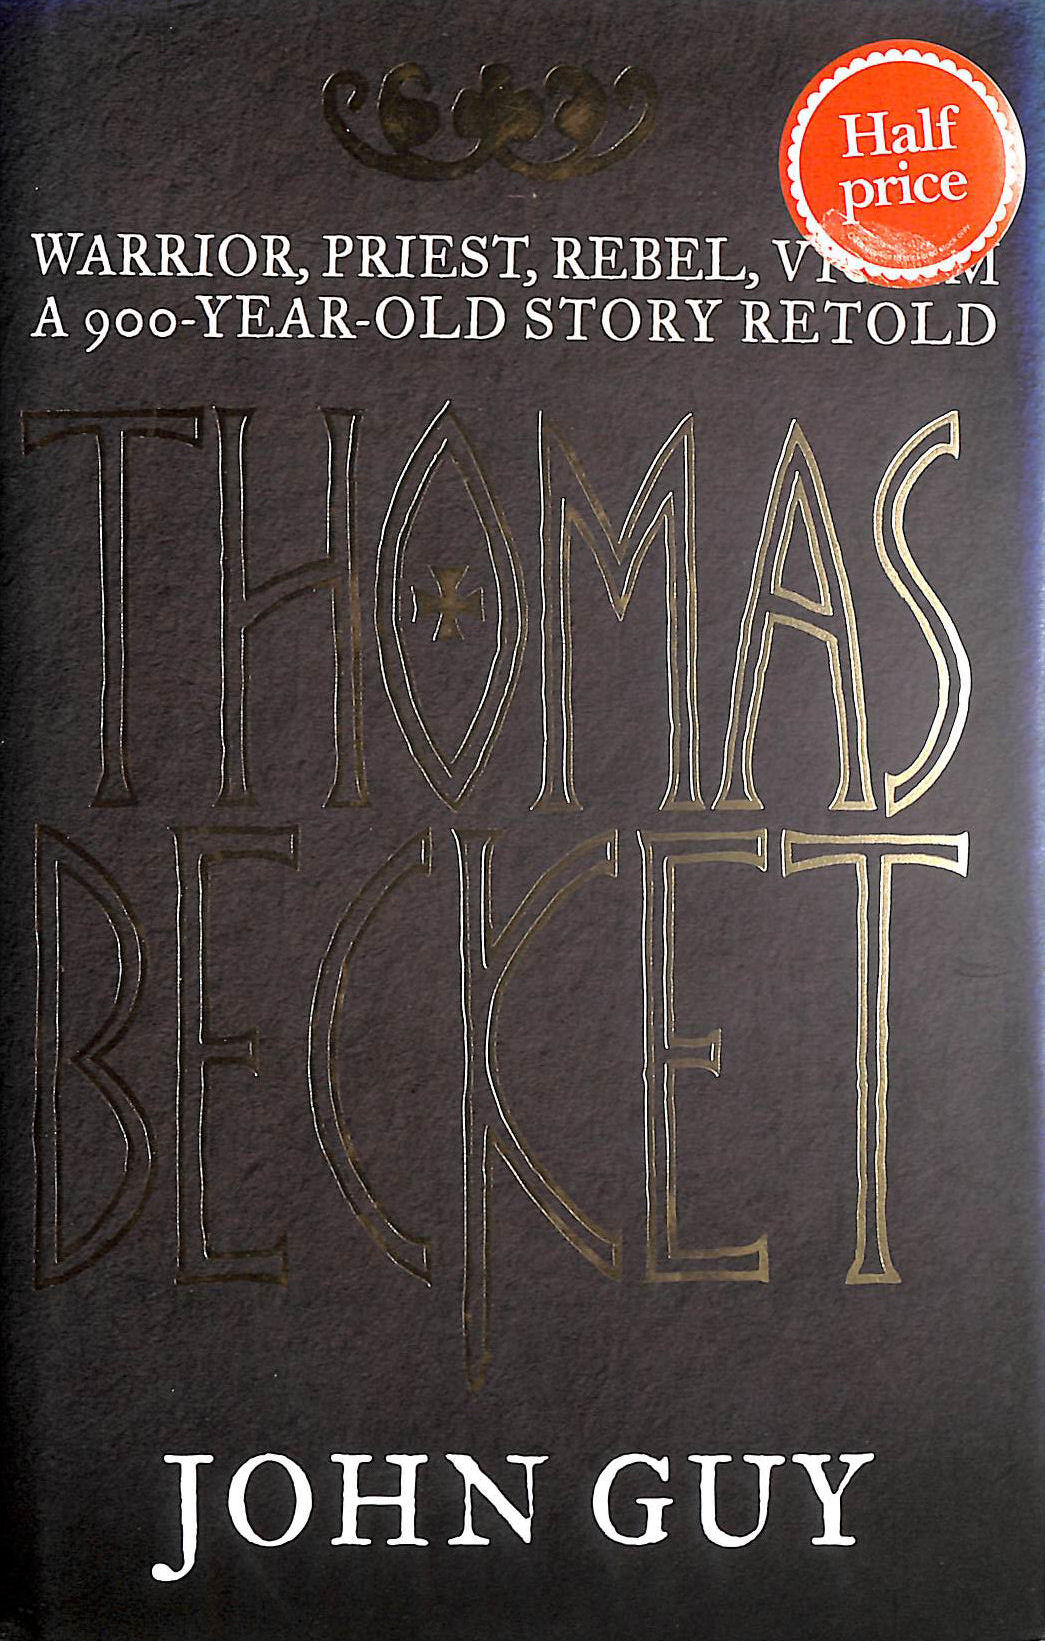 Image for Thomas Becket: Warrior, Priest, Rebel, Victim: A 900-Year-Old Story Retold